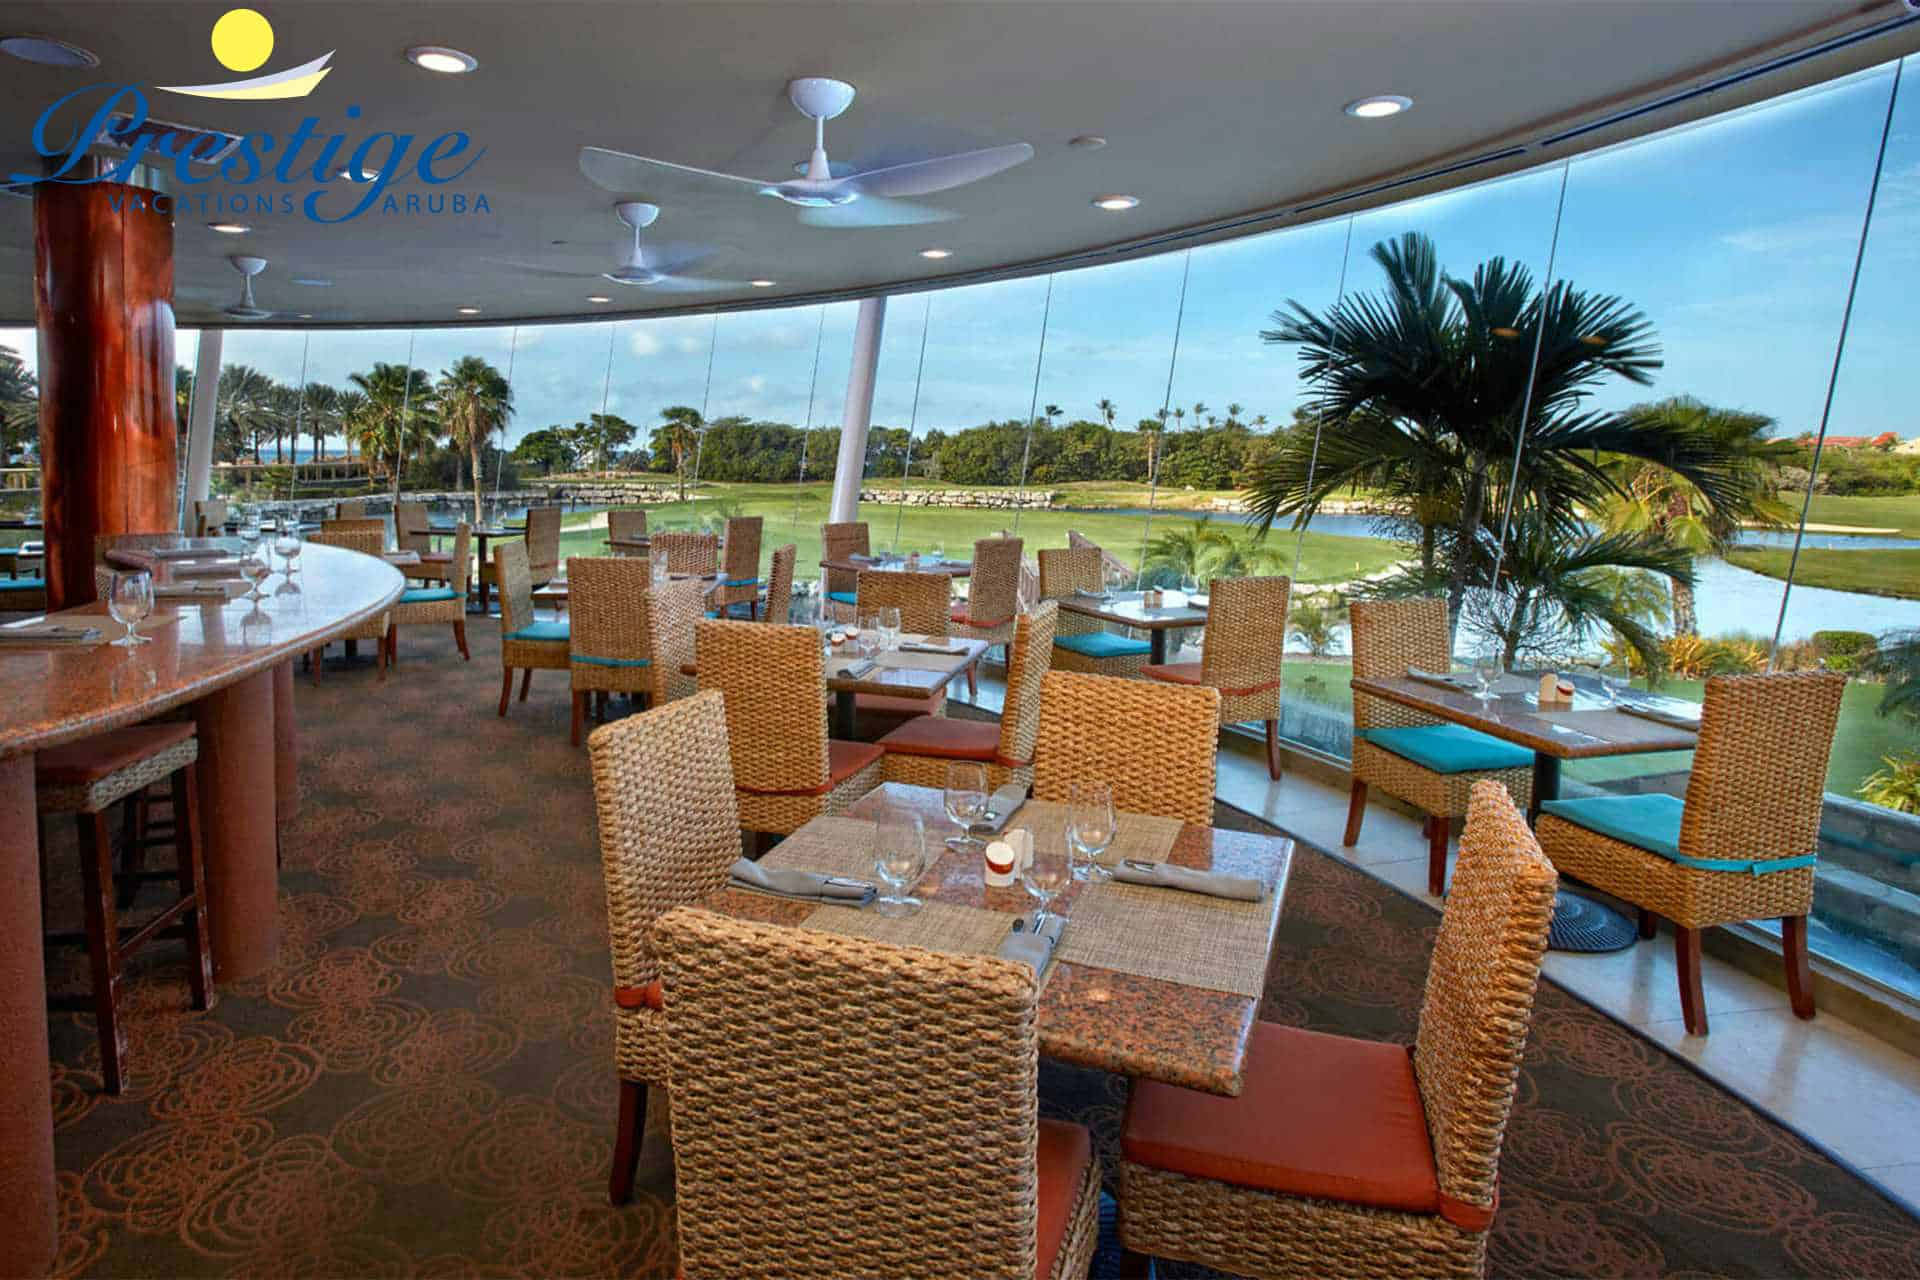 Mulligan's Golf Cafe, Bar & Restaurant - located at the Divi Clubhouse - serving breakfast, lunch, happy hour & dinner